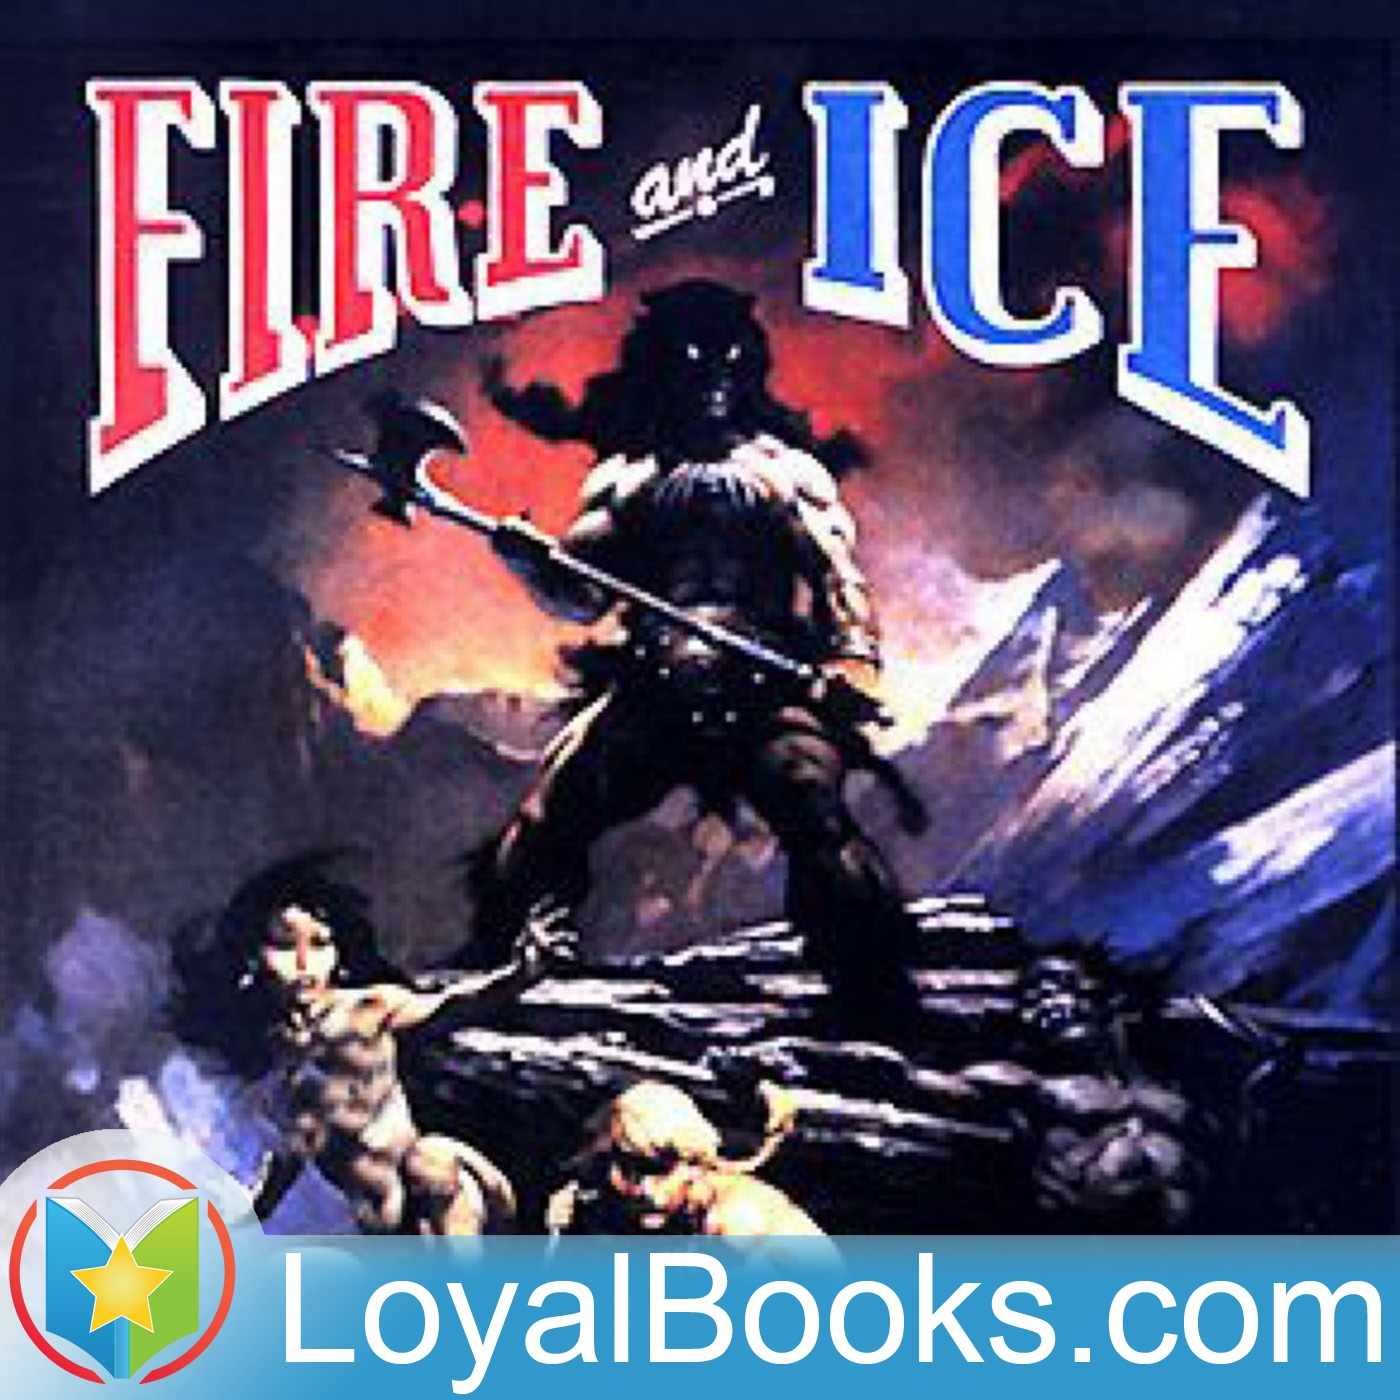 <![CDATA[Fire and Ice by Robert Frost]]>